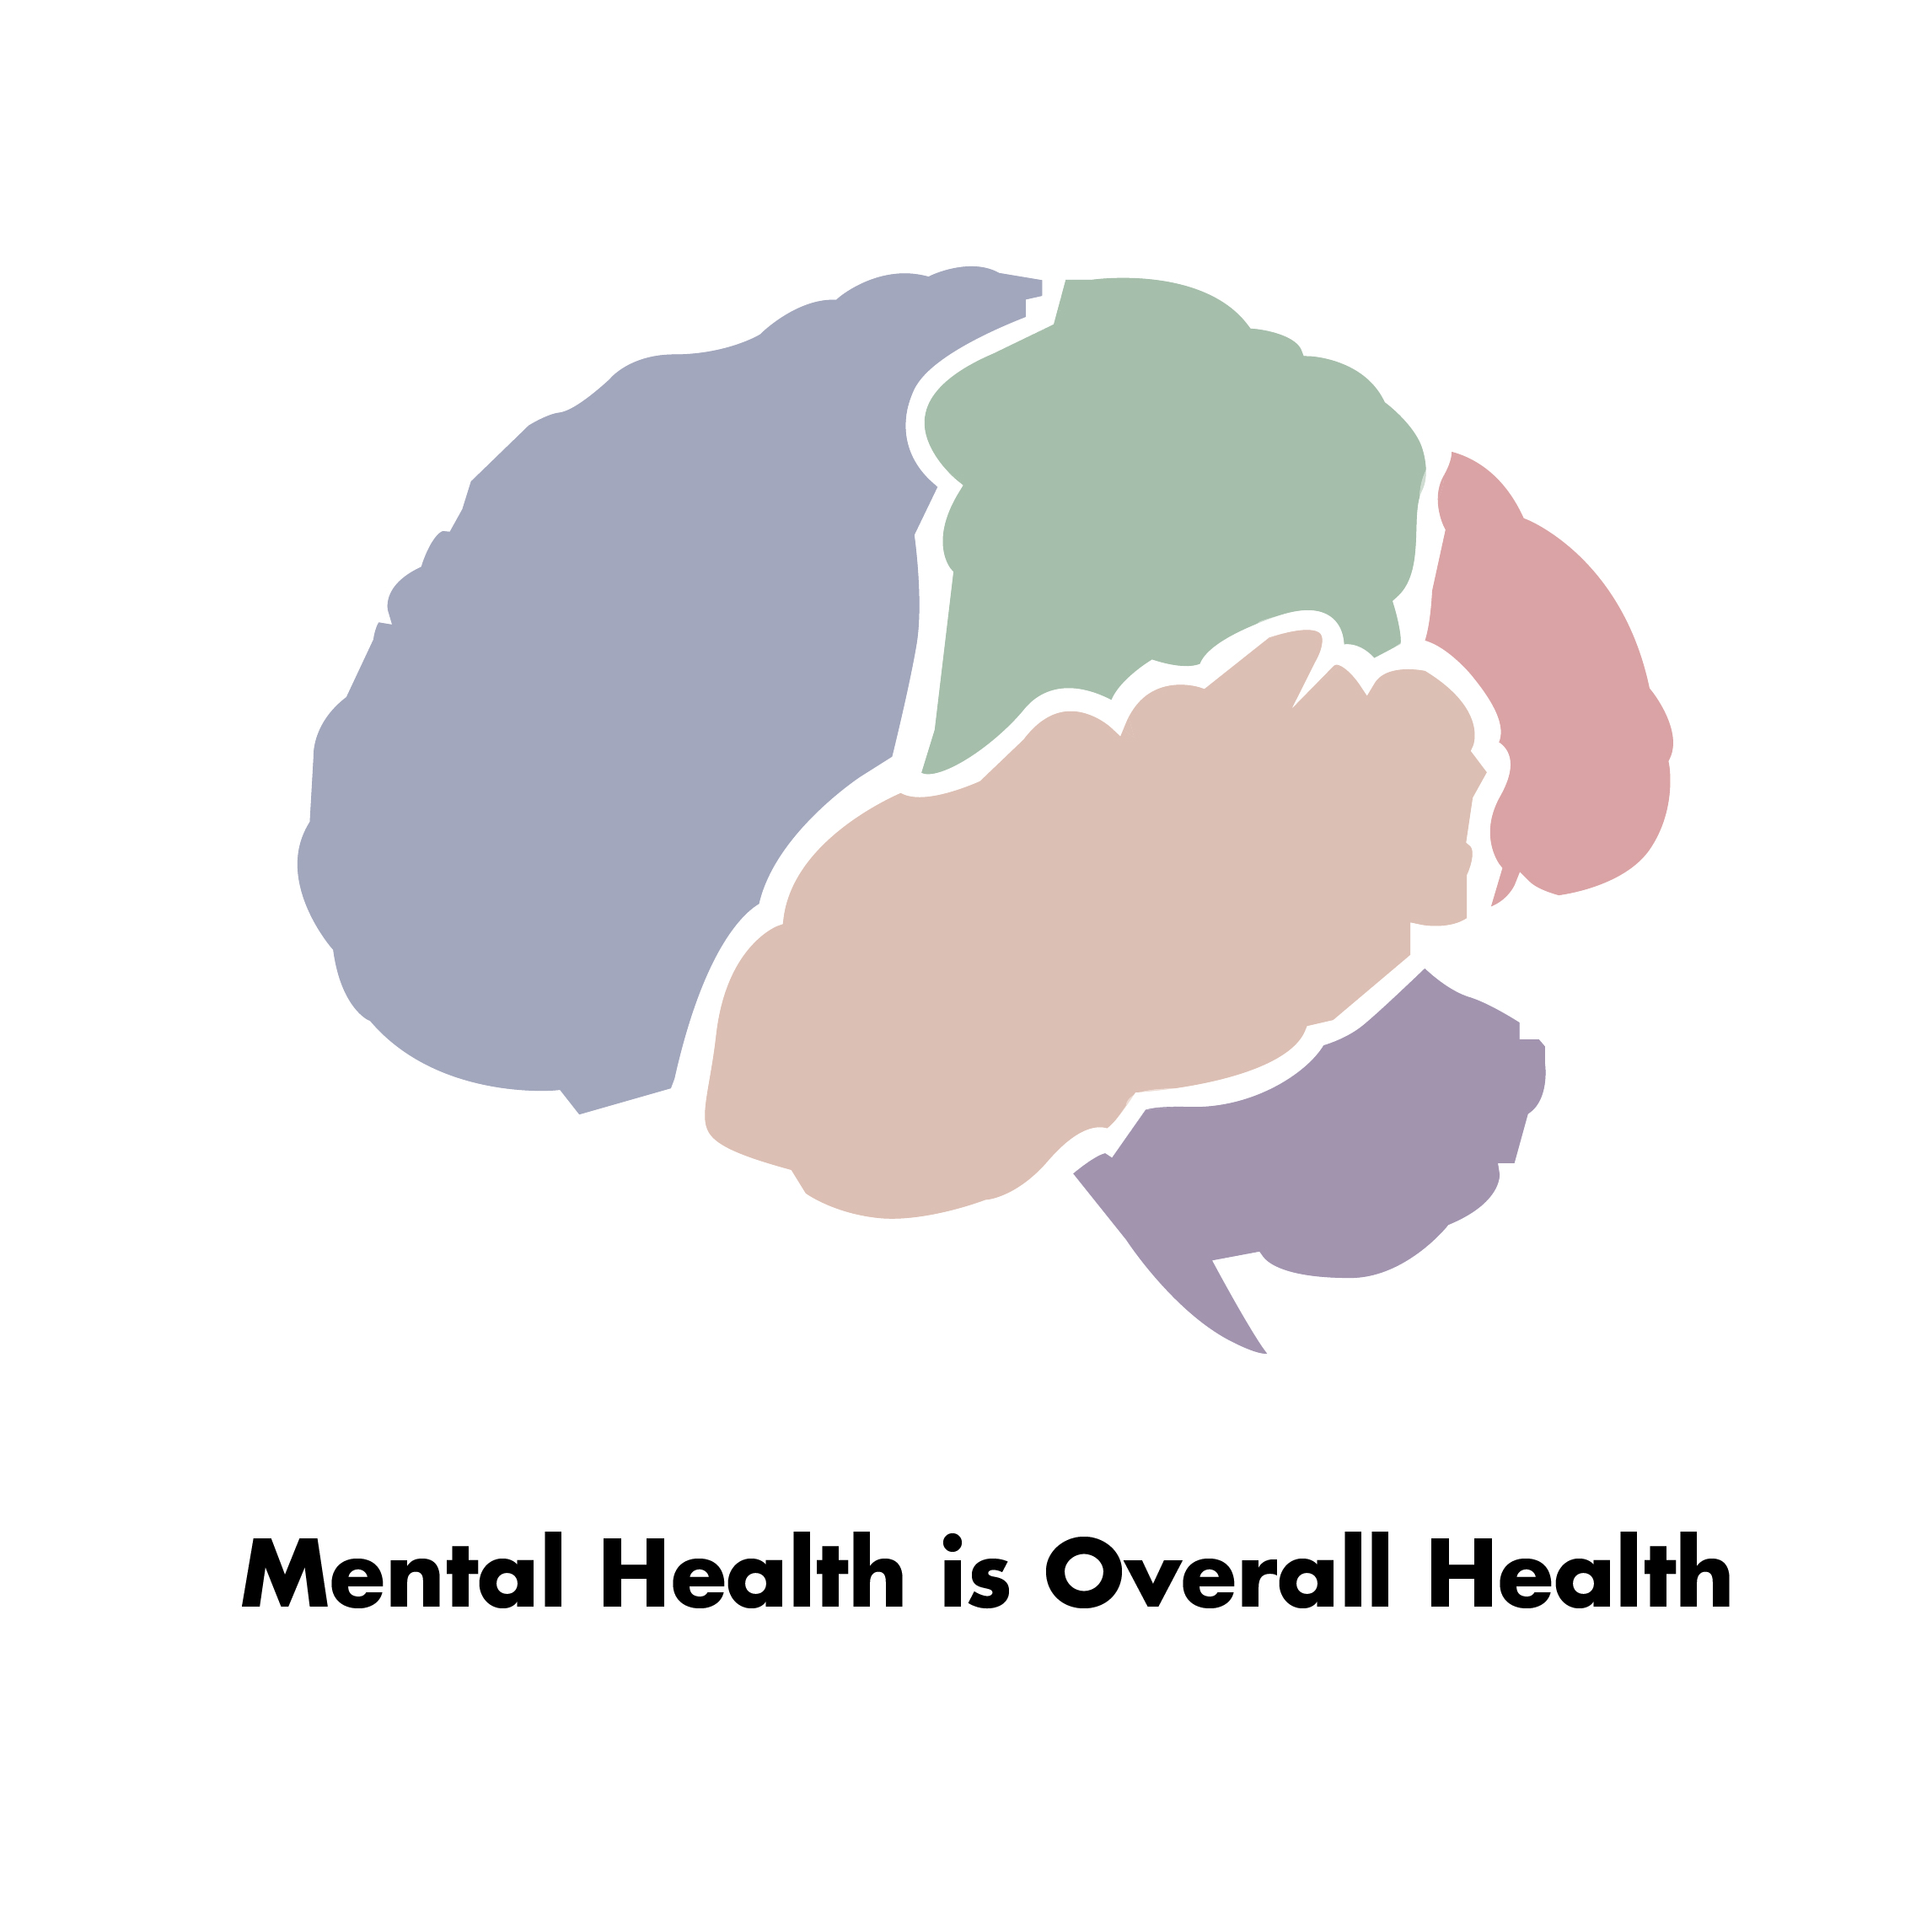 <i>Mental Health is Overall Health</i>